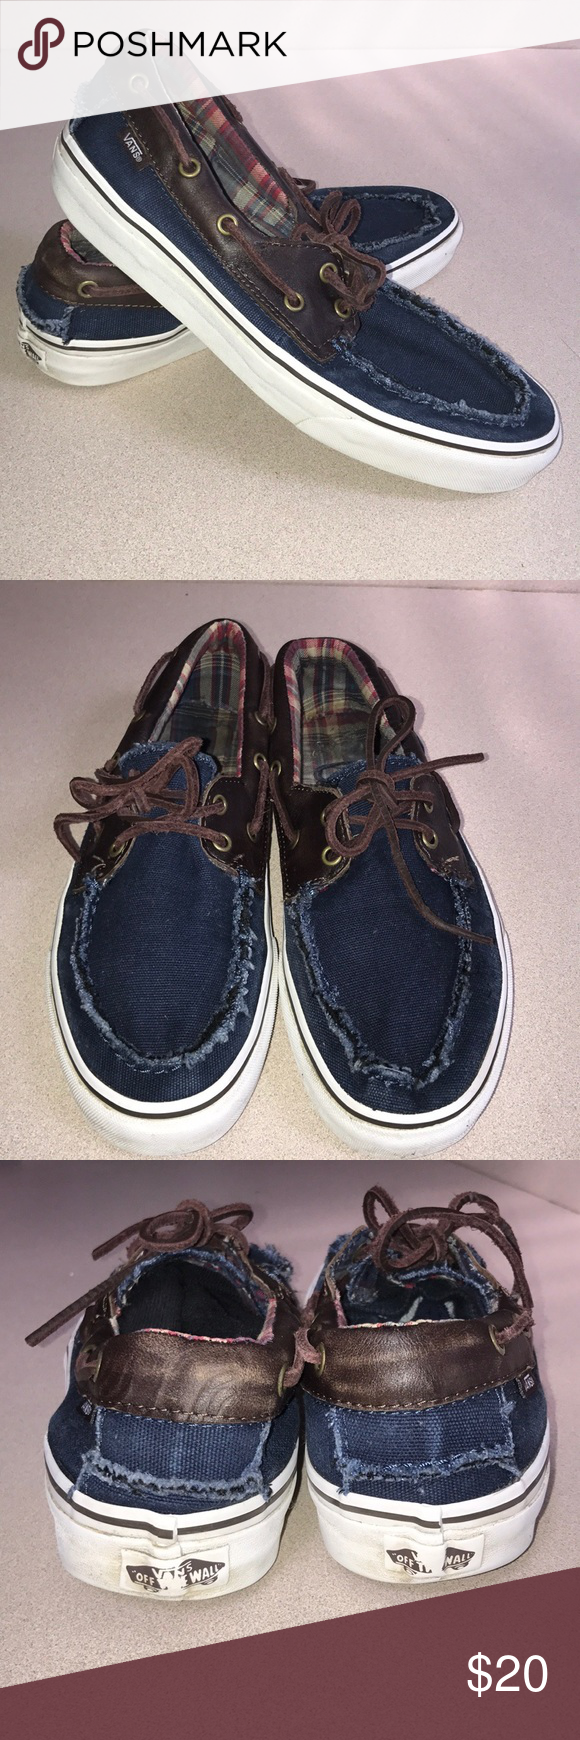 b5be69fa99 Vans denim   leather boat shoes Men s size 9   women s size 10 1 2 Loved-  but lots of life left in these bad boys!! Vans Shoes Boat Shoes